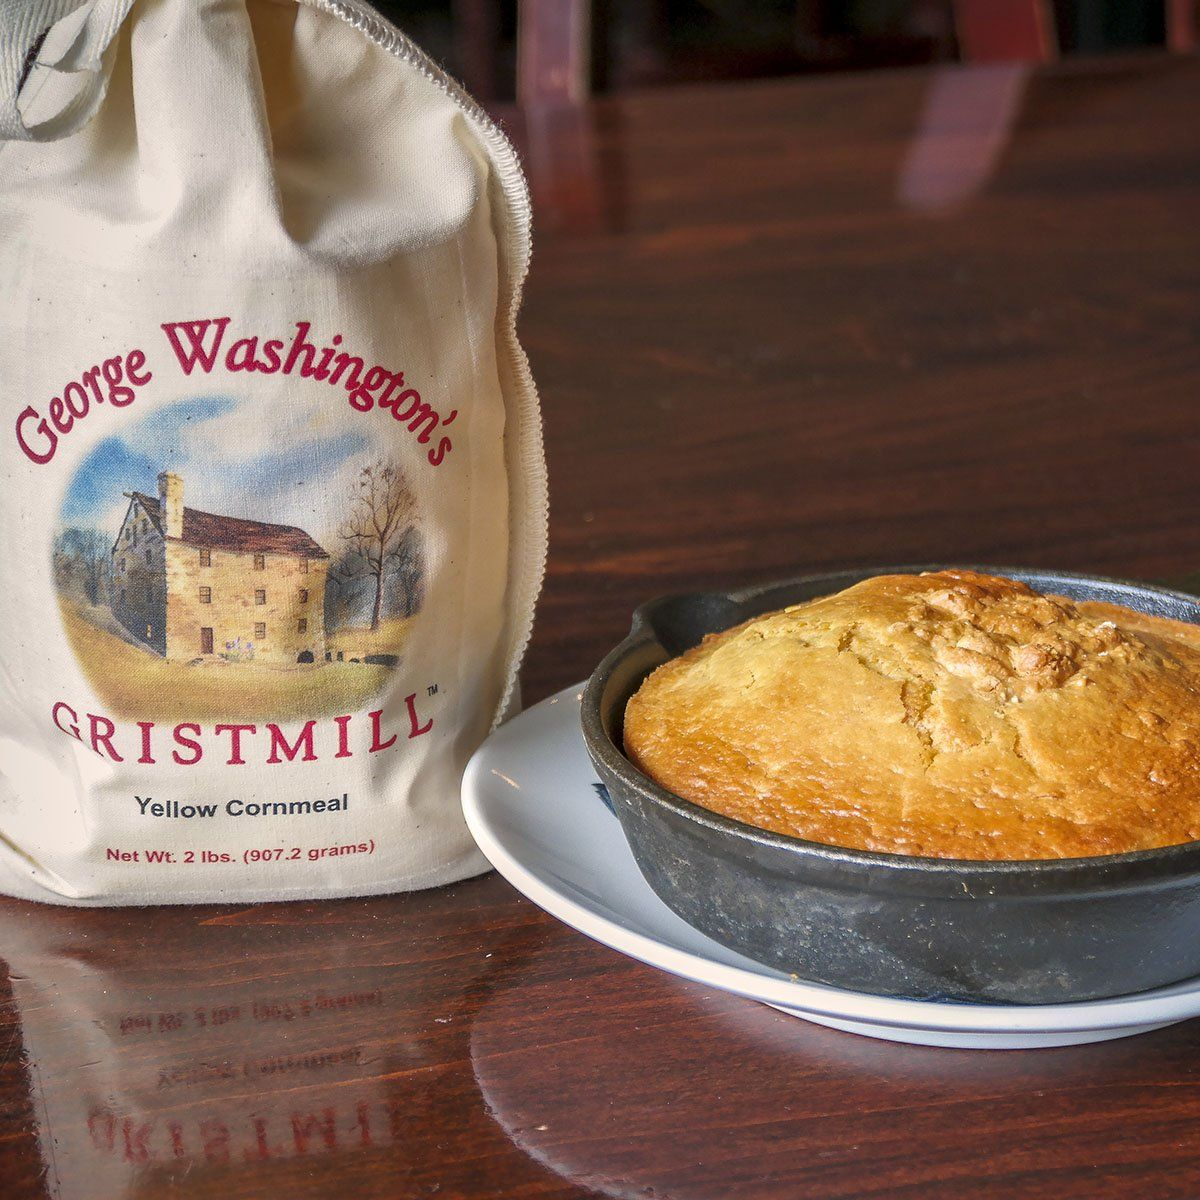 George Washington's Yellow Cornmeal